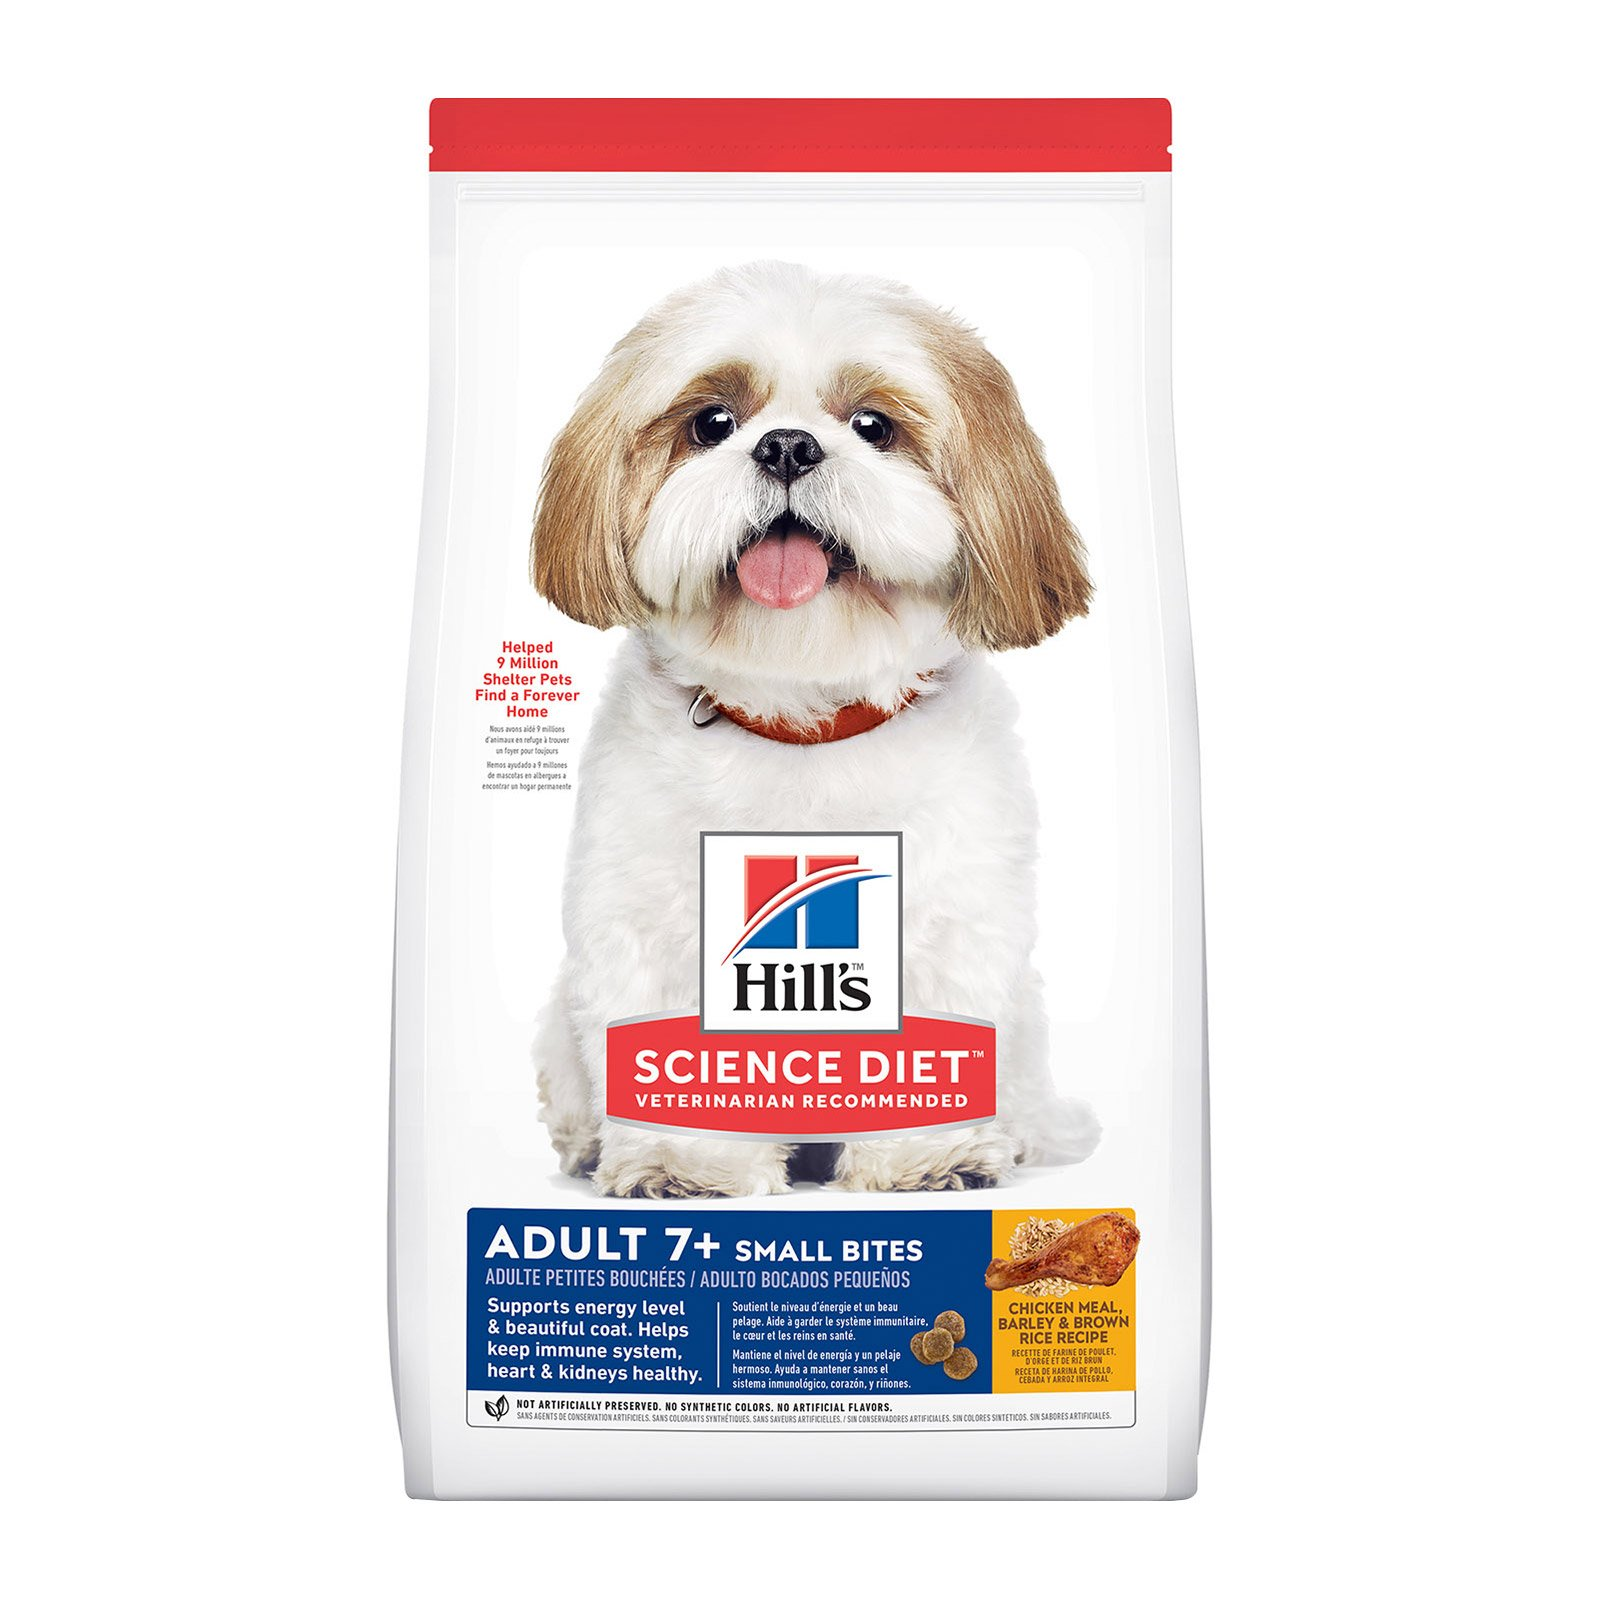 Hill's Science Diet Small Bites Adult 7+ Senior Dog Food